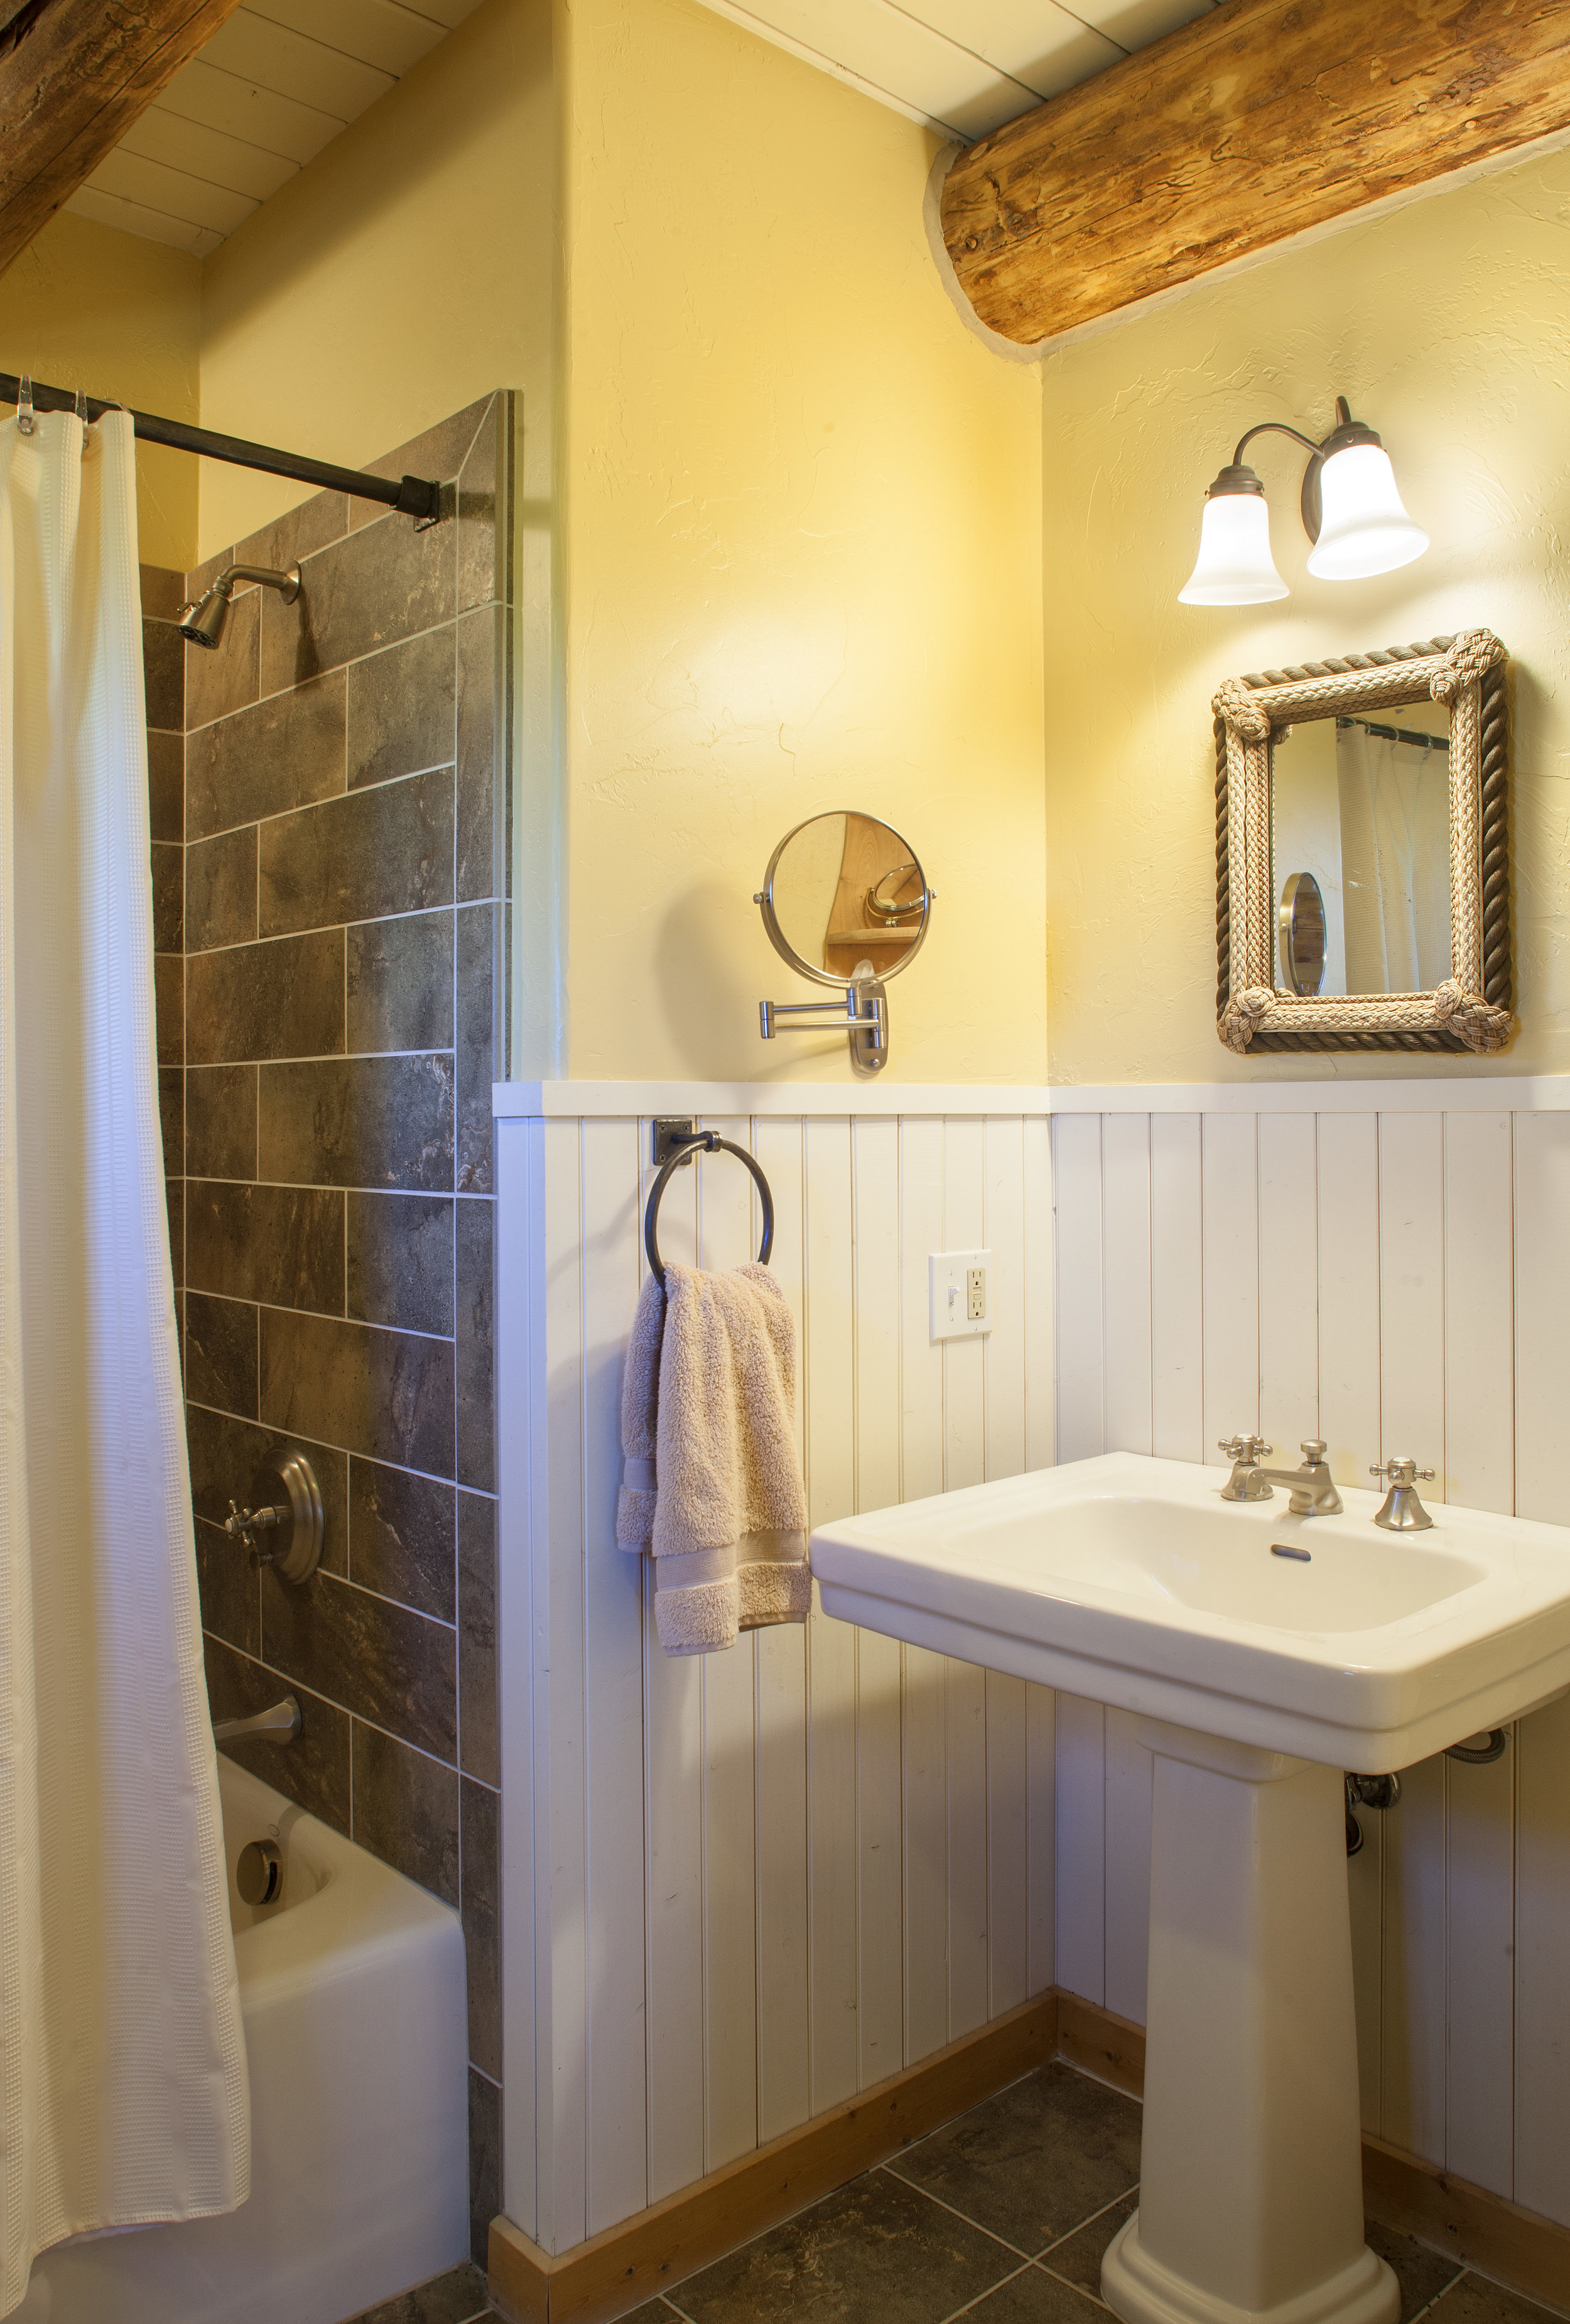 Guest Bathroom Located on the First Floor